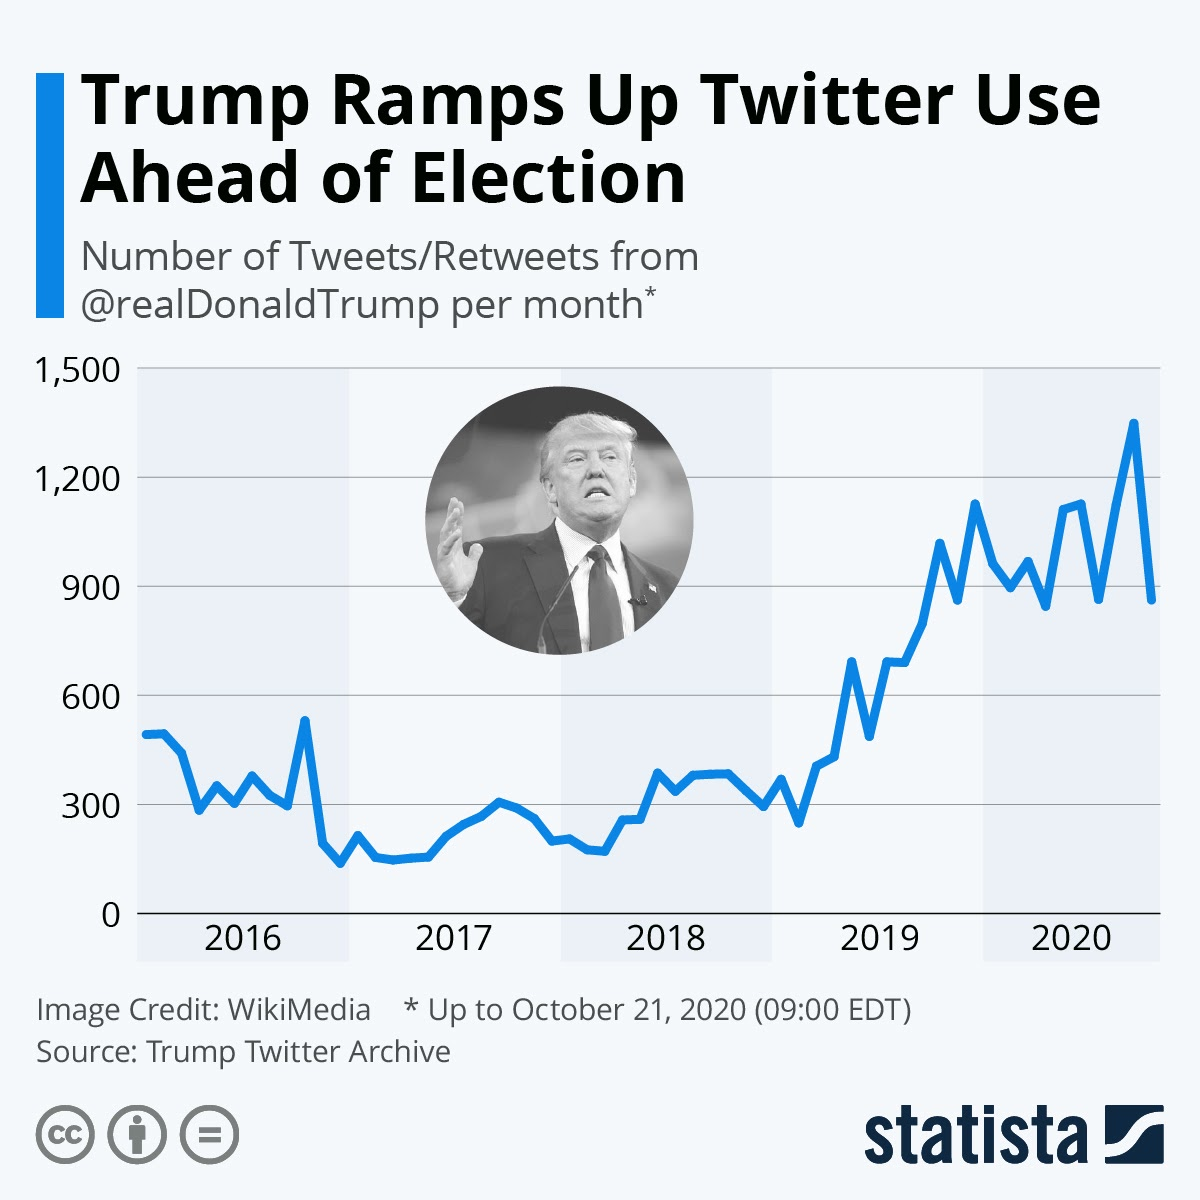 Trump Ramps Up Twitter Use Ahead of Election #infographic